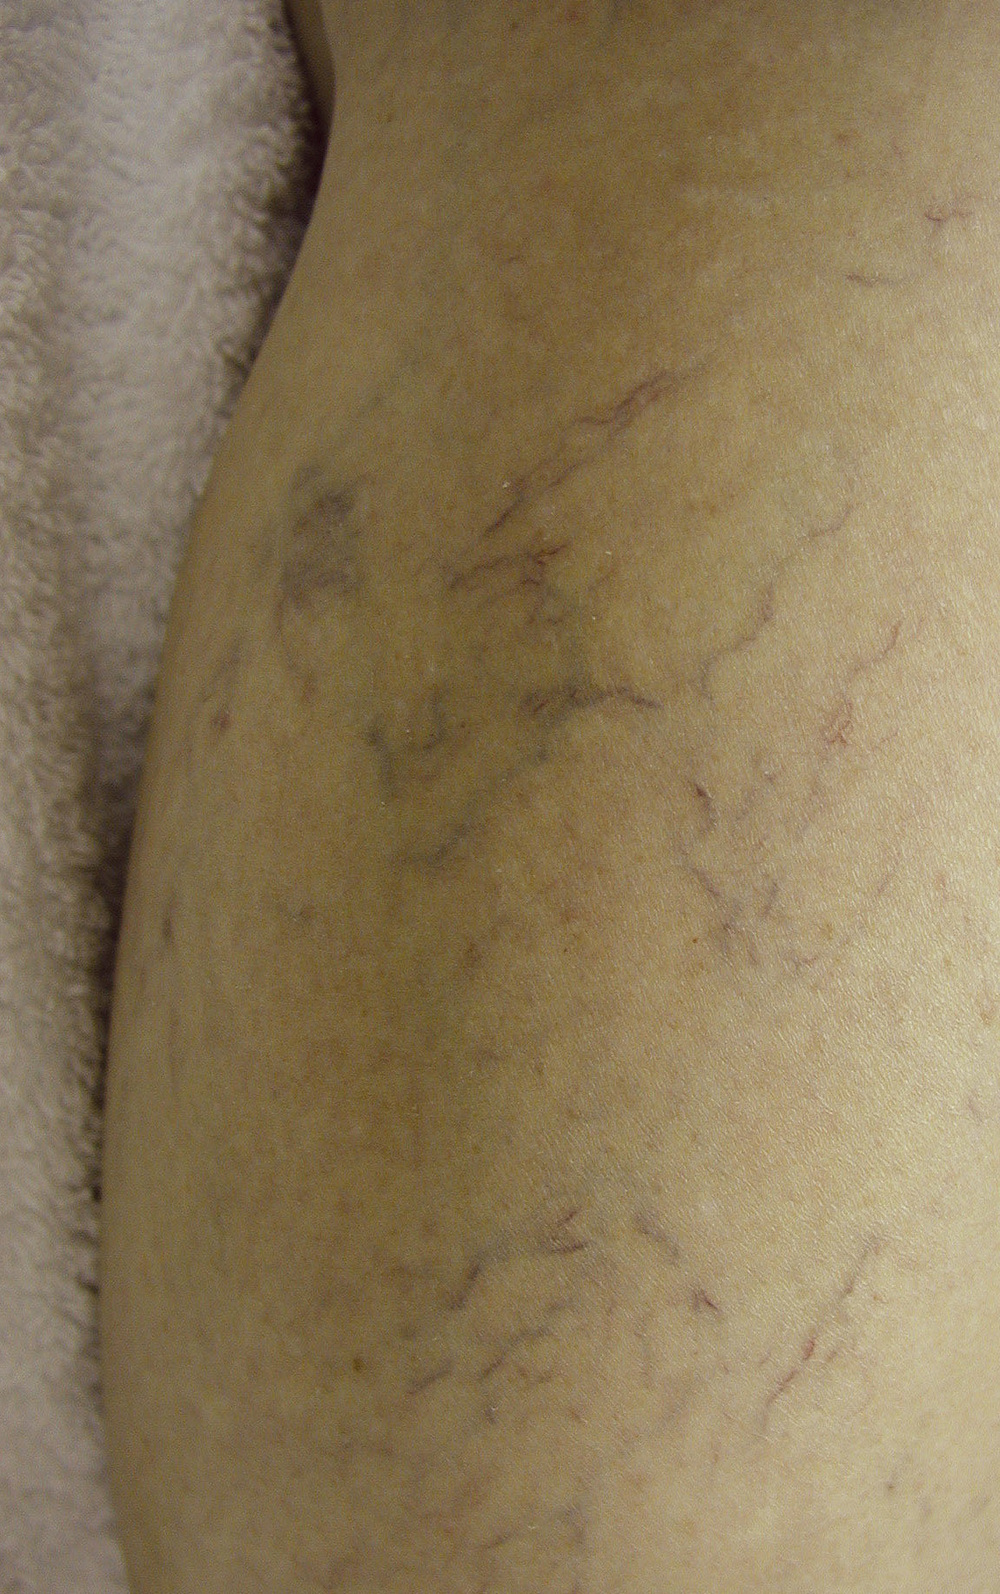 Before Thread Vein Removal